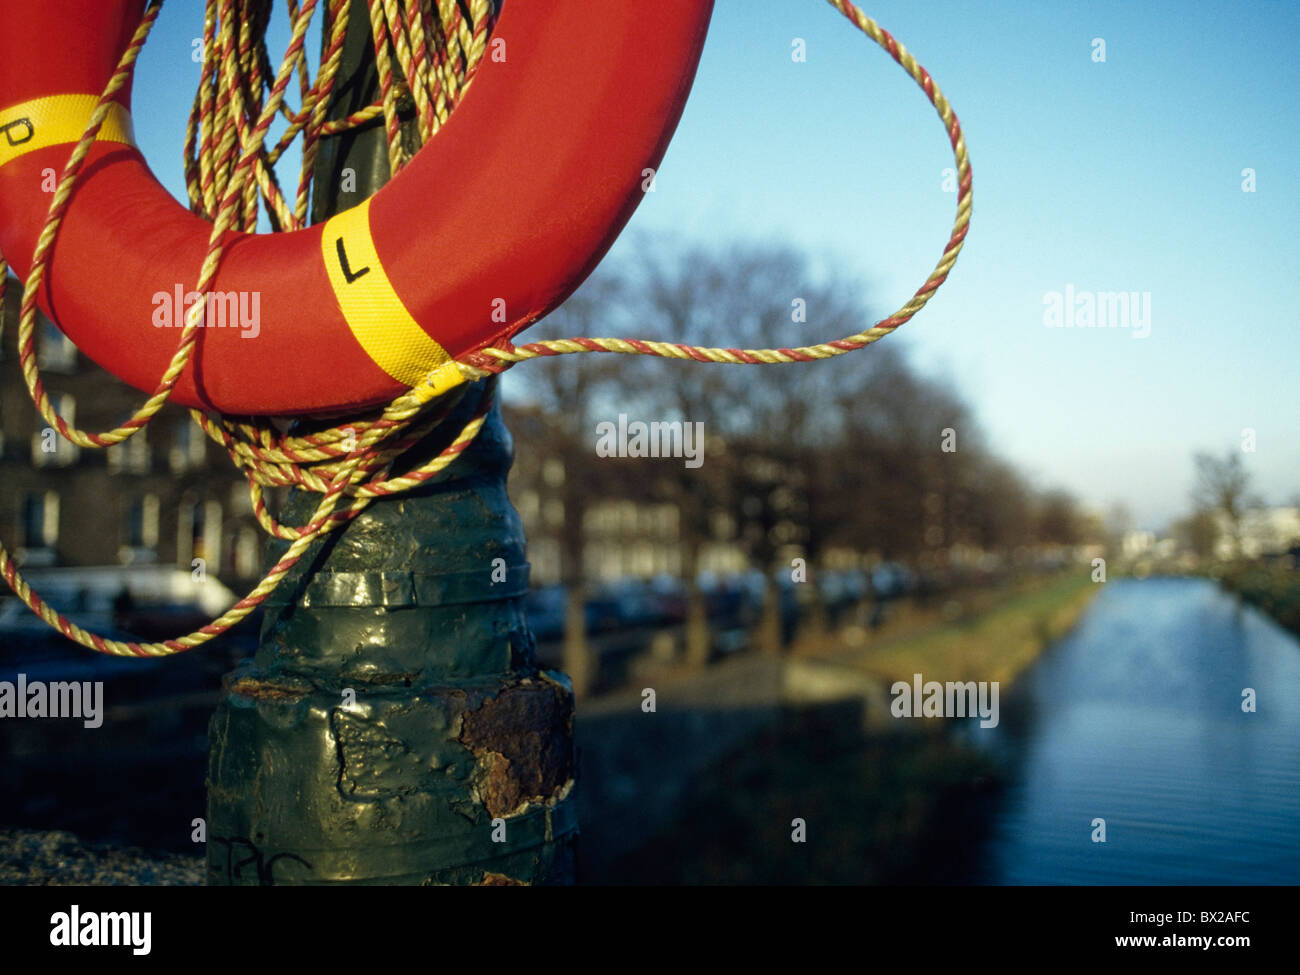 Grand Canal,Co Dublin,Ireland;View Of Canal,With Lifesaver In Foreground - Stock Image